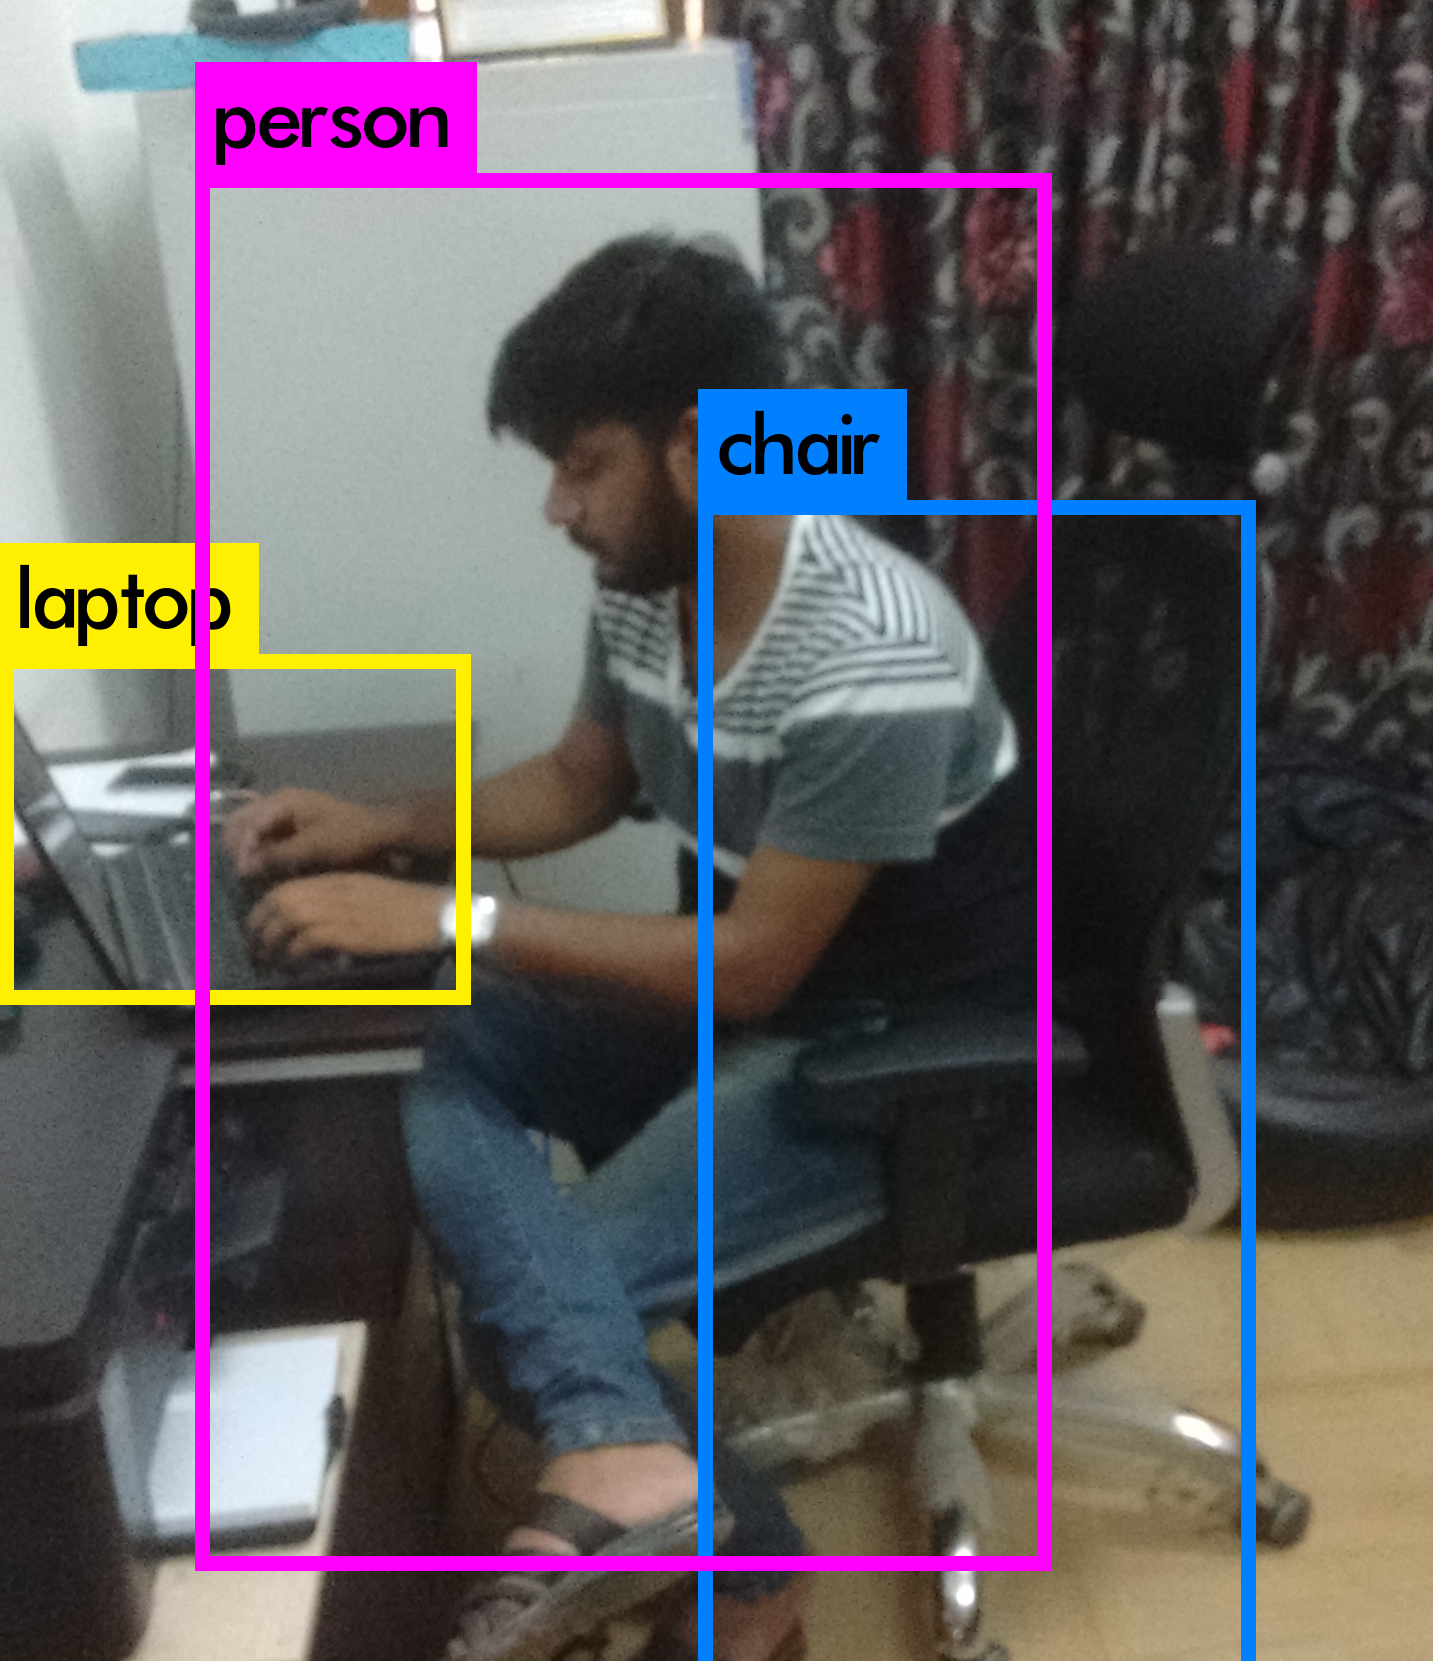 Finding chairs the data scientist way! (Hint: using Deep